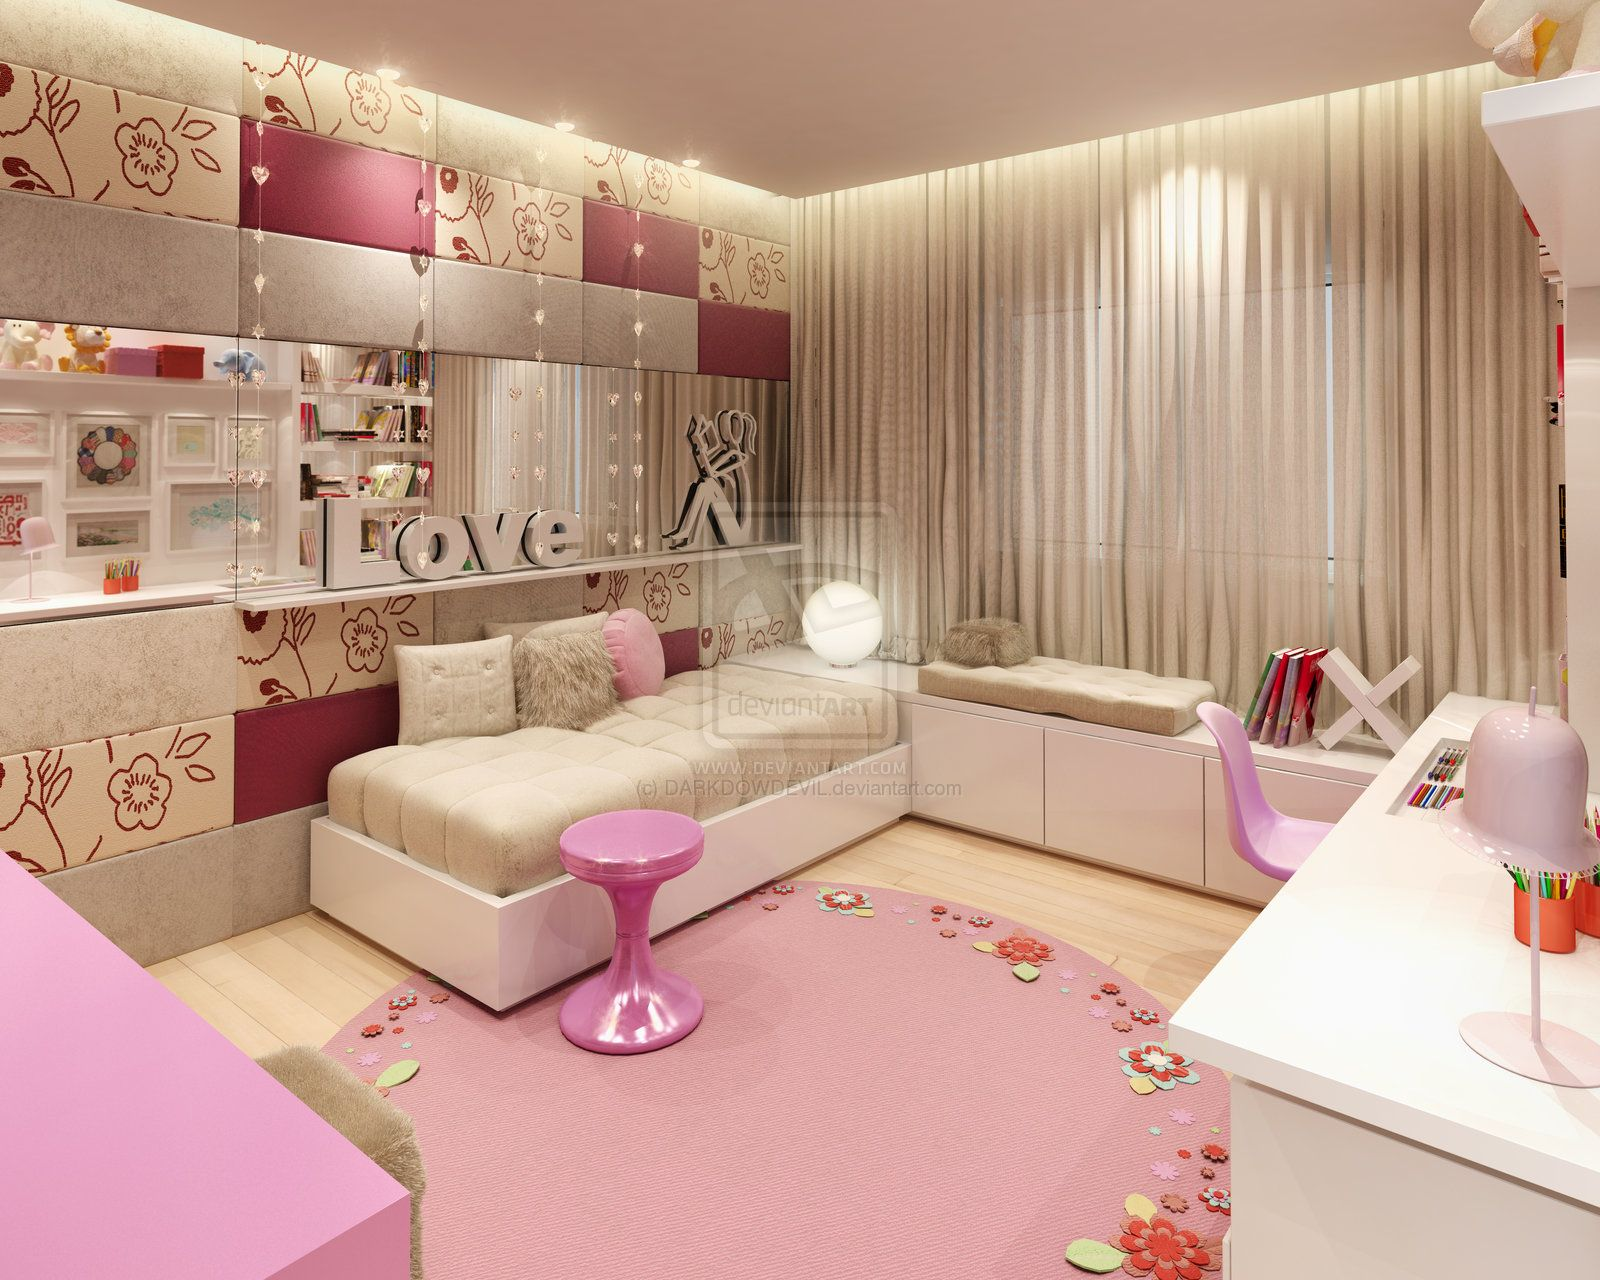 Bedroom For Girls Awesome Bedroom For Girls Photos  Decorating Design Ideas